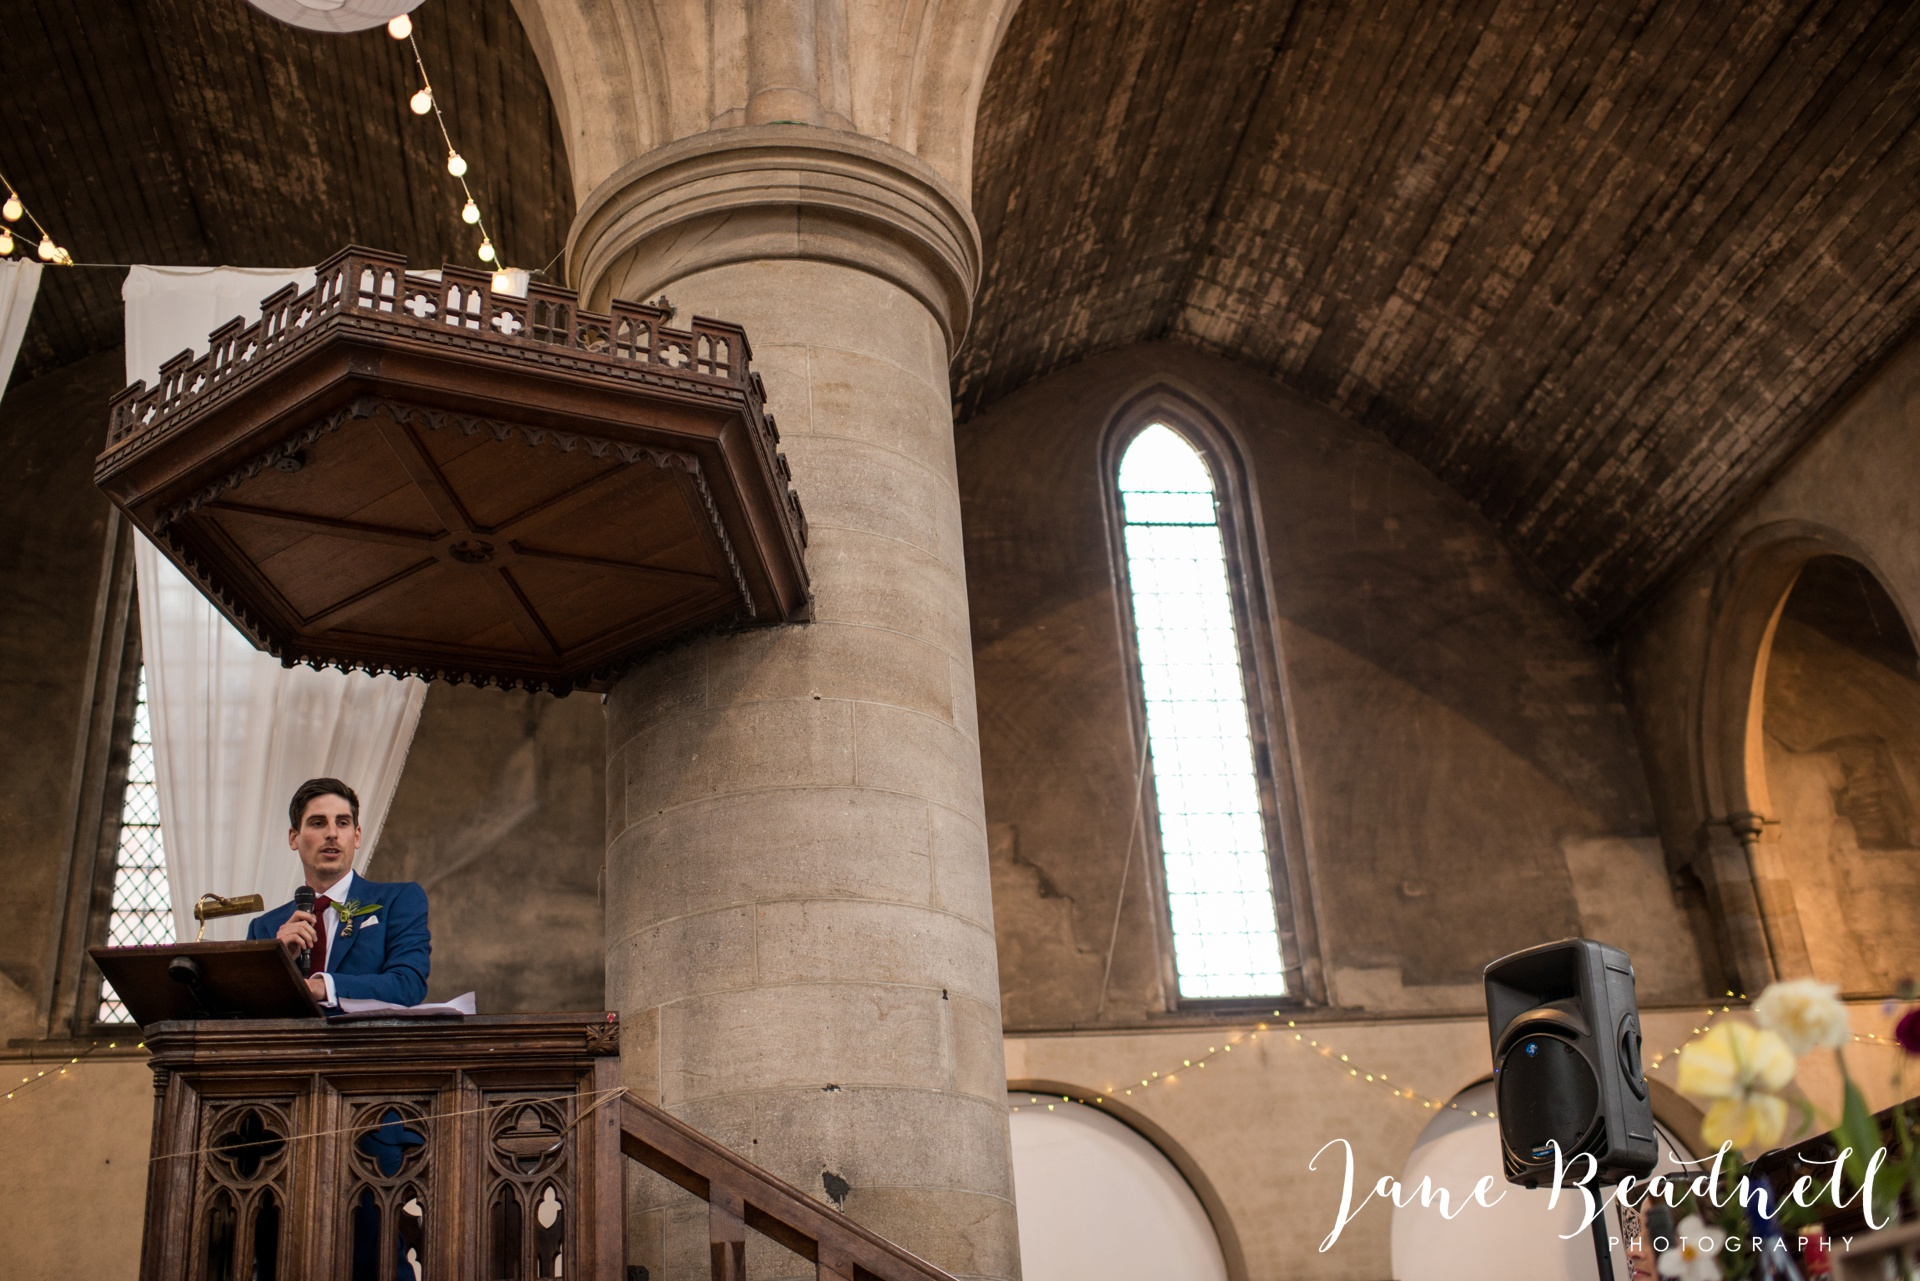 Left Bank Centre Leeds wedding photography by Jane Beadnell photography Yorkshire_0107